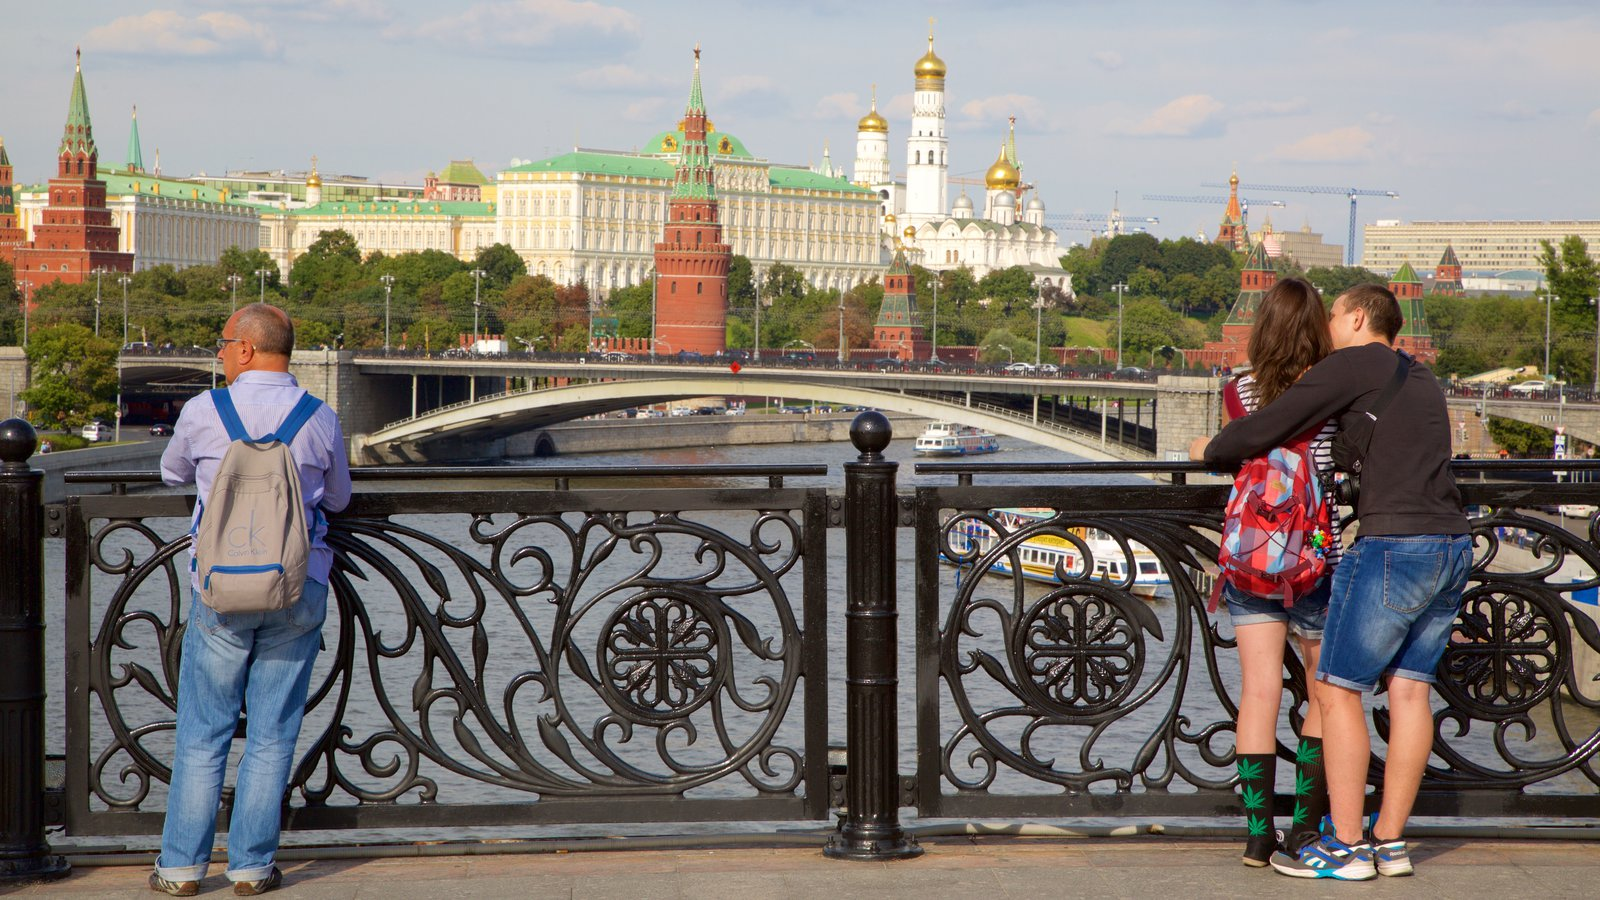 Moscow Kremlin showing a bridge and a river or creek as well as an individual male